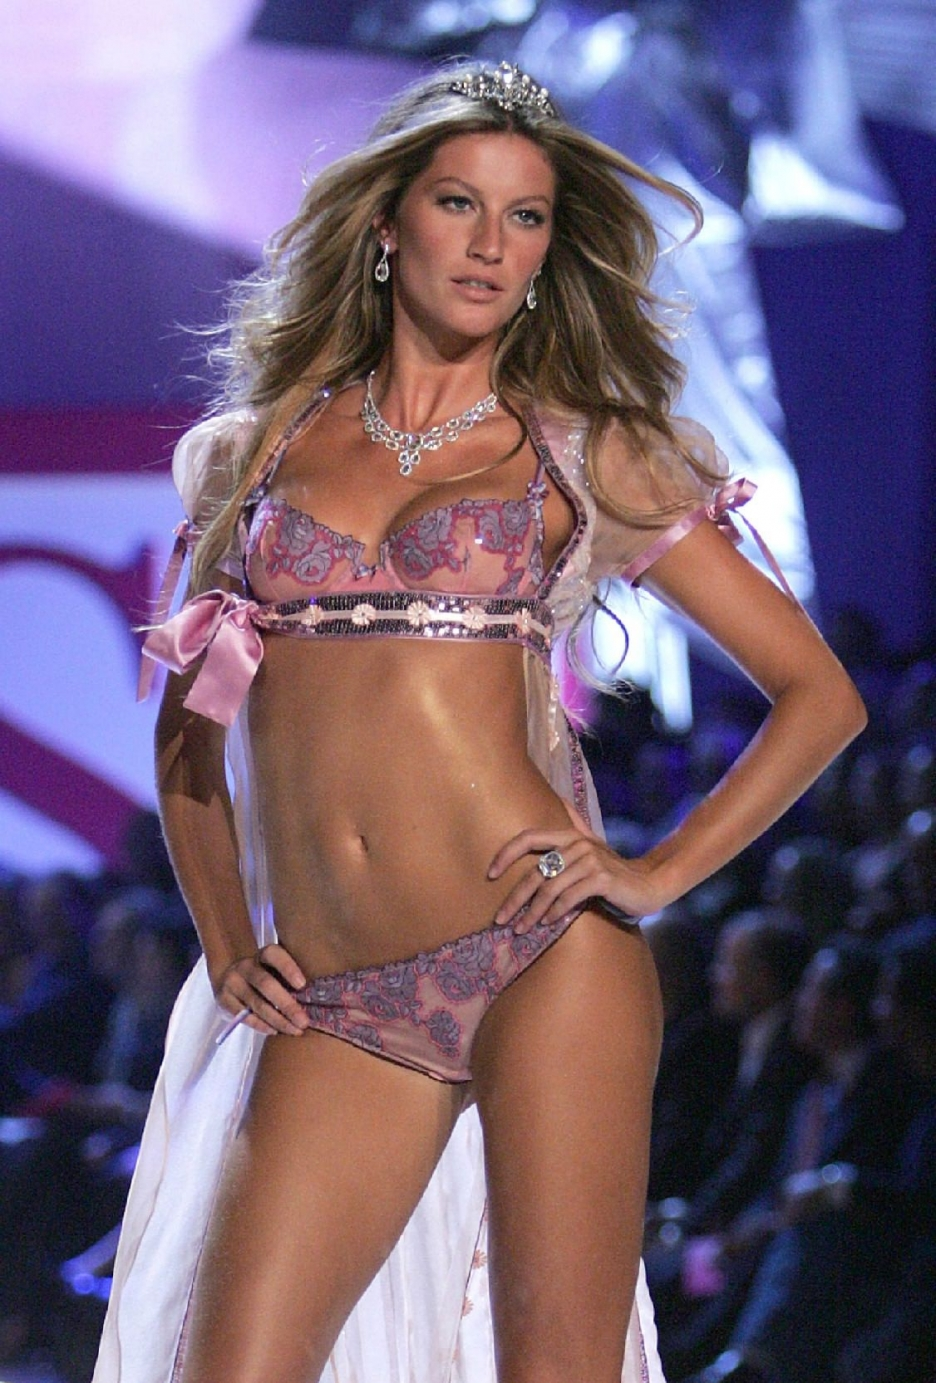 Gisele Bundchen Brazilian Fashion Model Actress | Gisele ... Gisele Bundchen